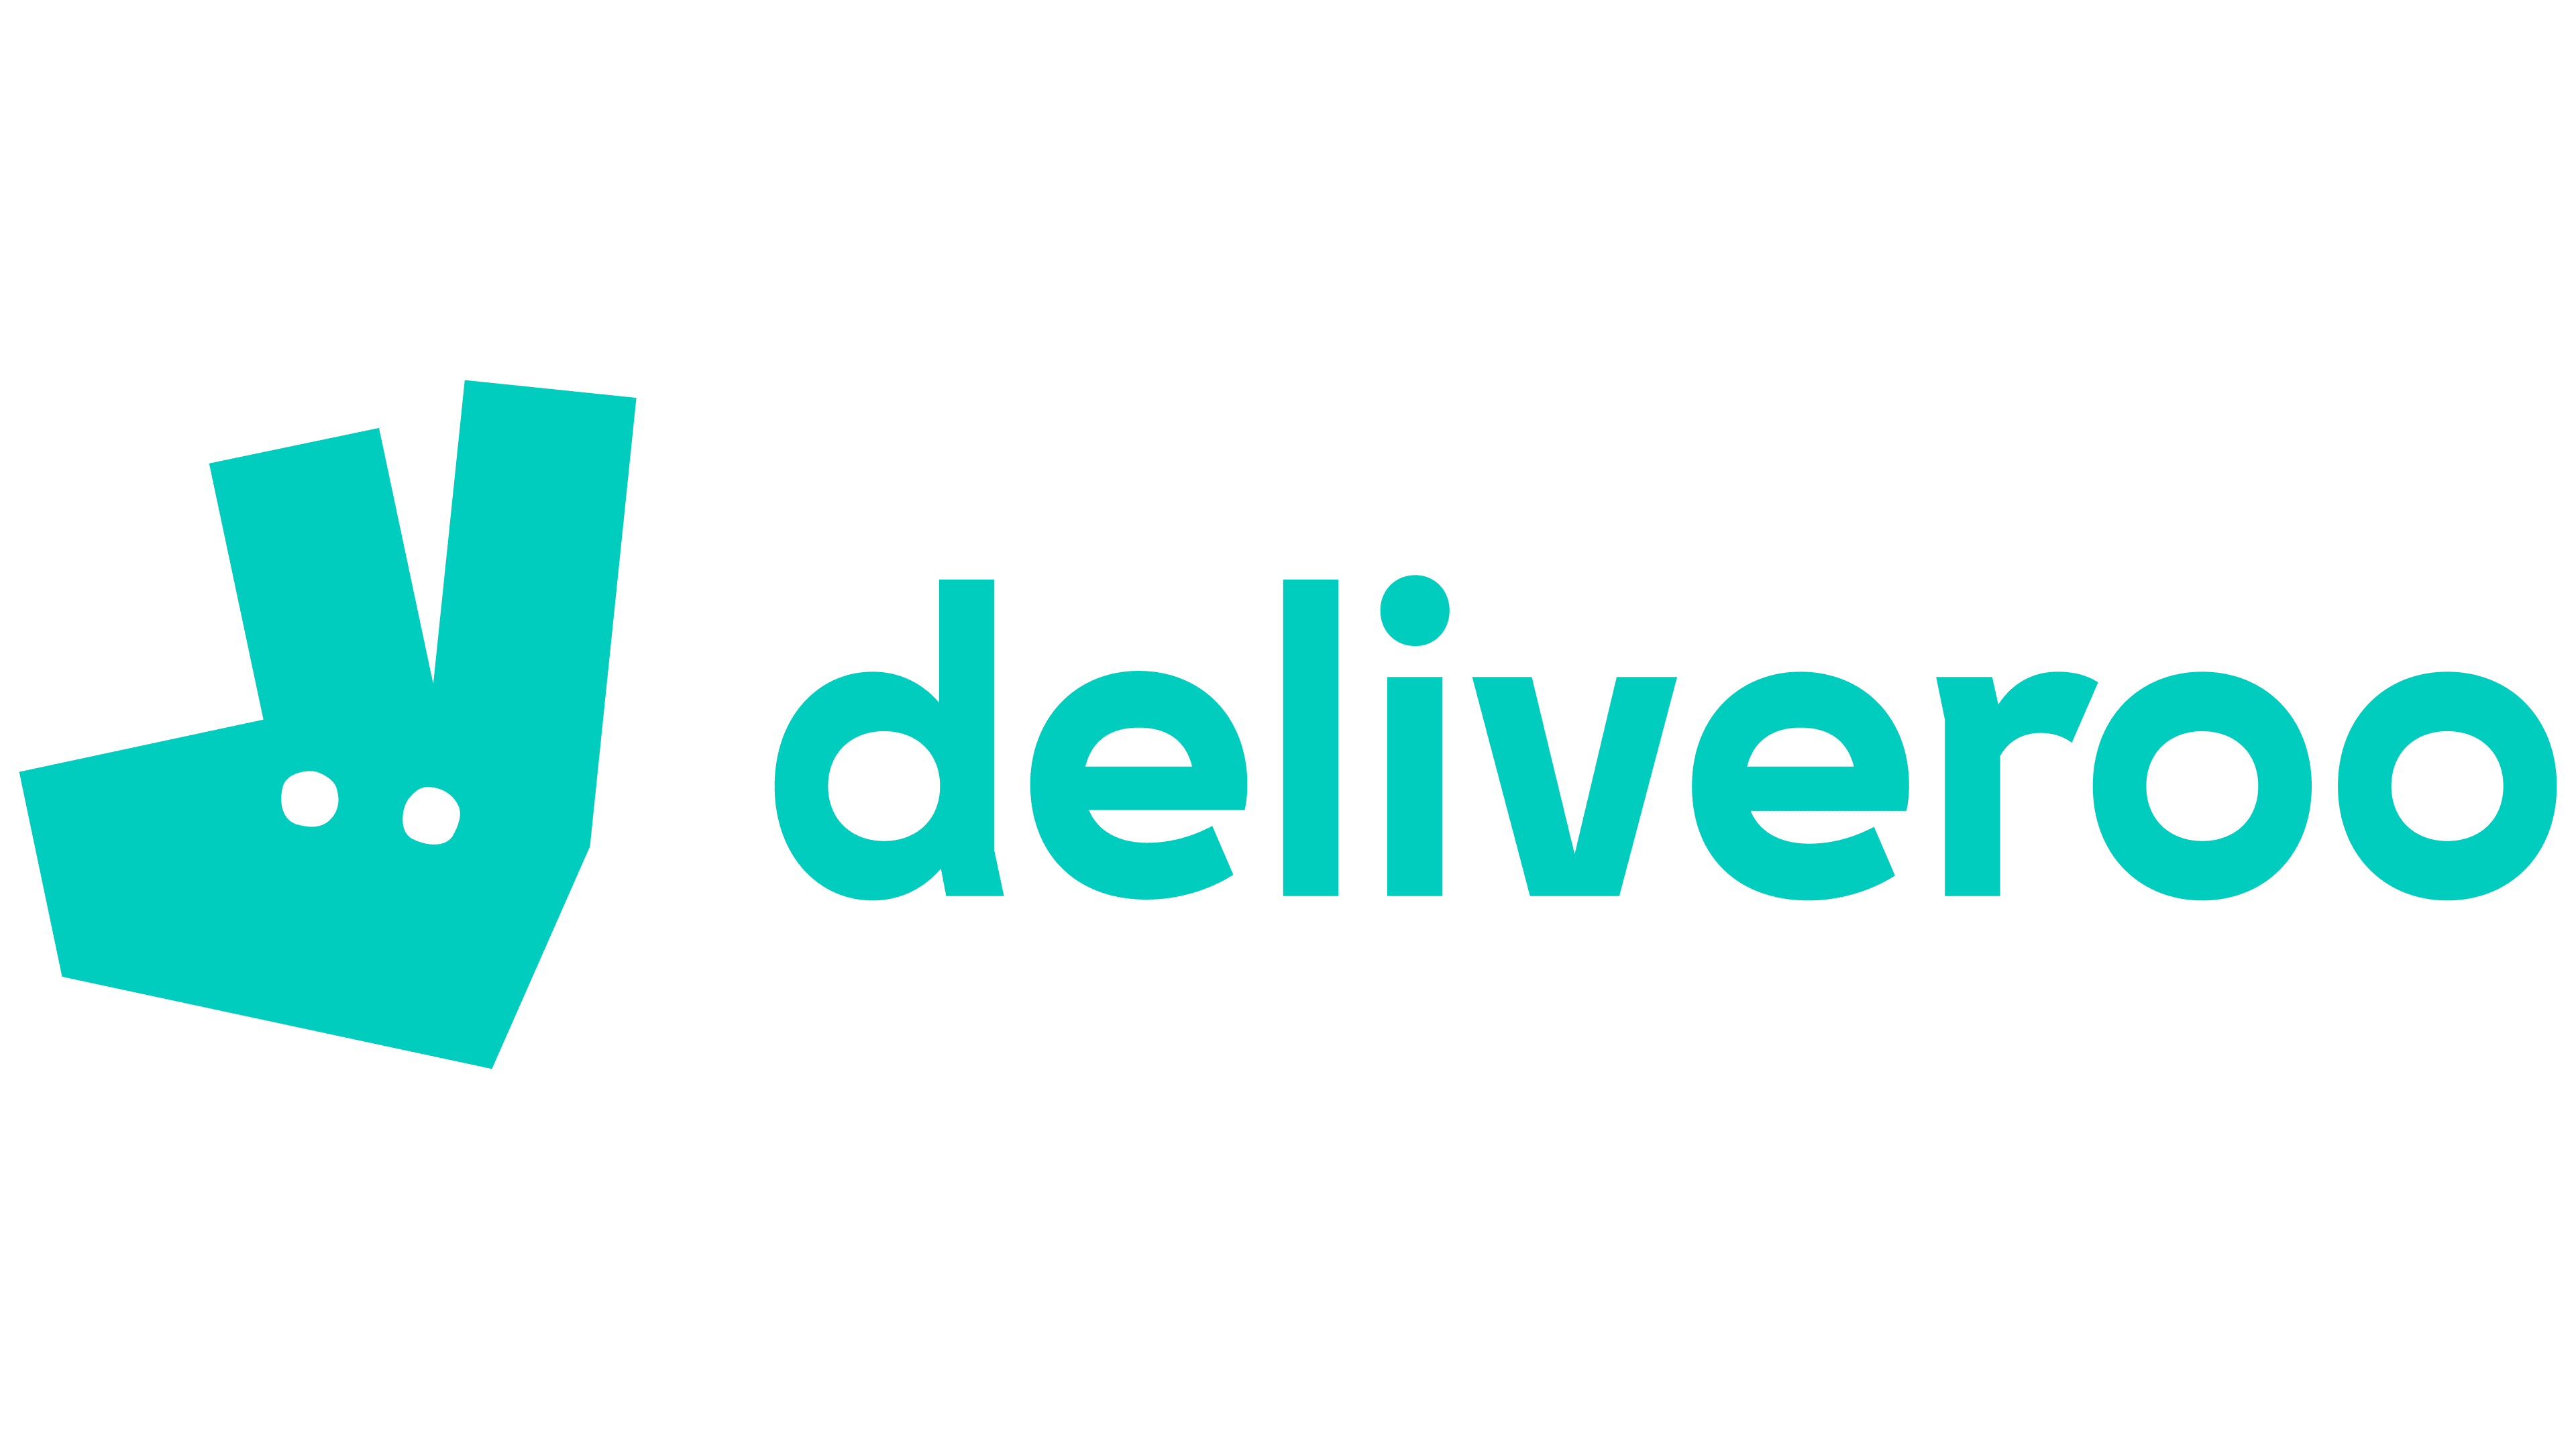 Deliveroo stock